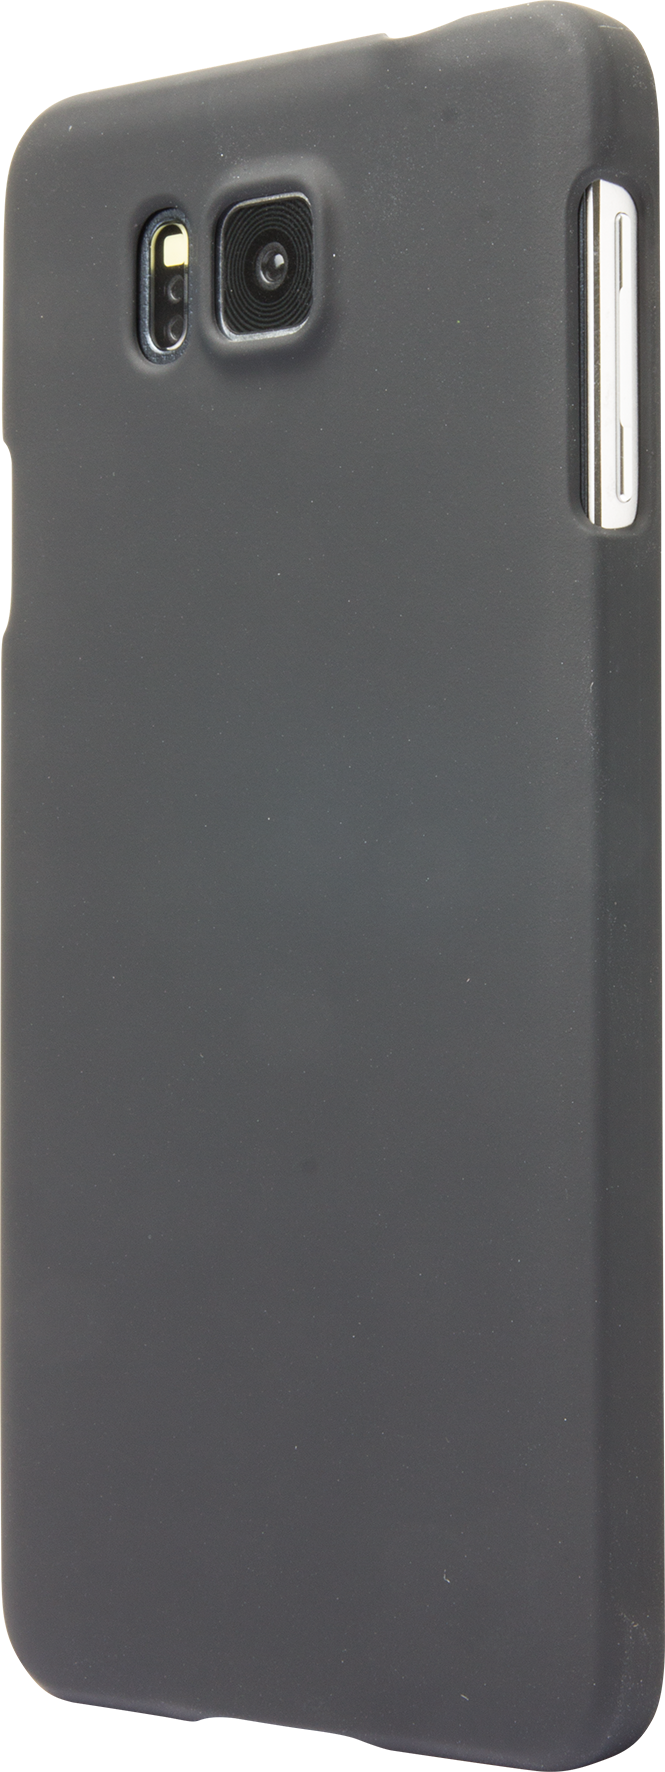 Läs mer om iZound Hardcase Samsung Galaxy Alpha Black